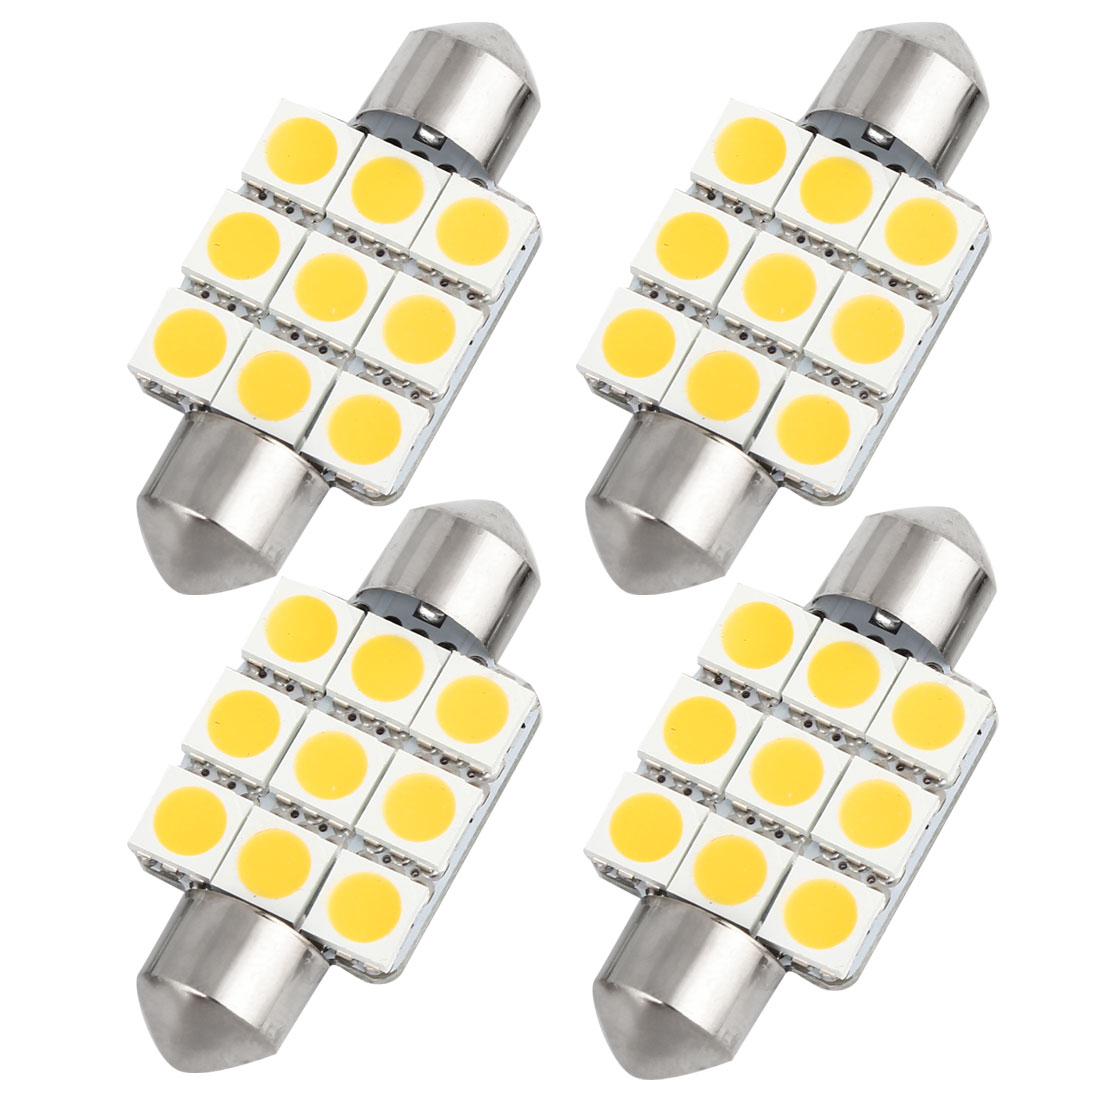 4pcs 36mm Warm White 9 LED 5050 SMD Festoon Dome Light Lamp DC 12V 6418 6413 Internal